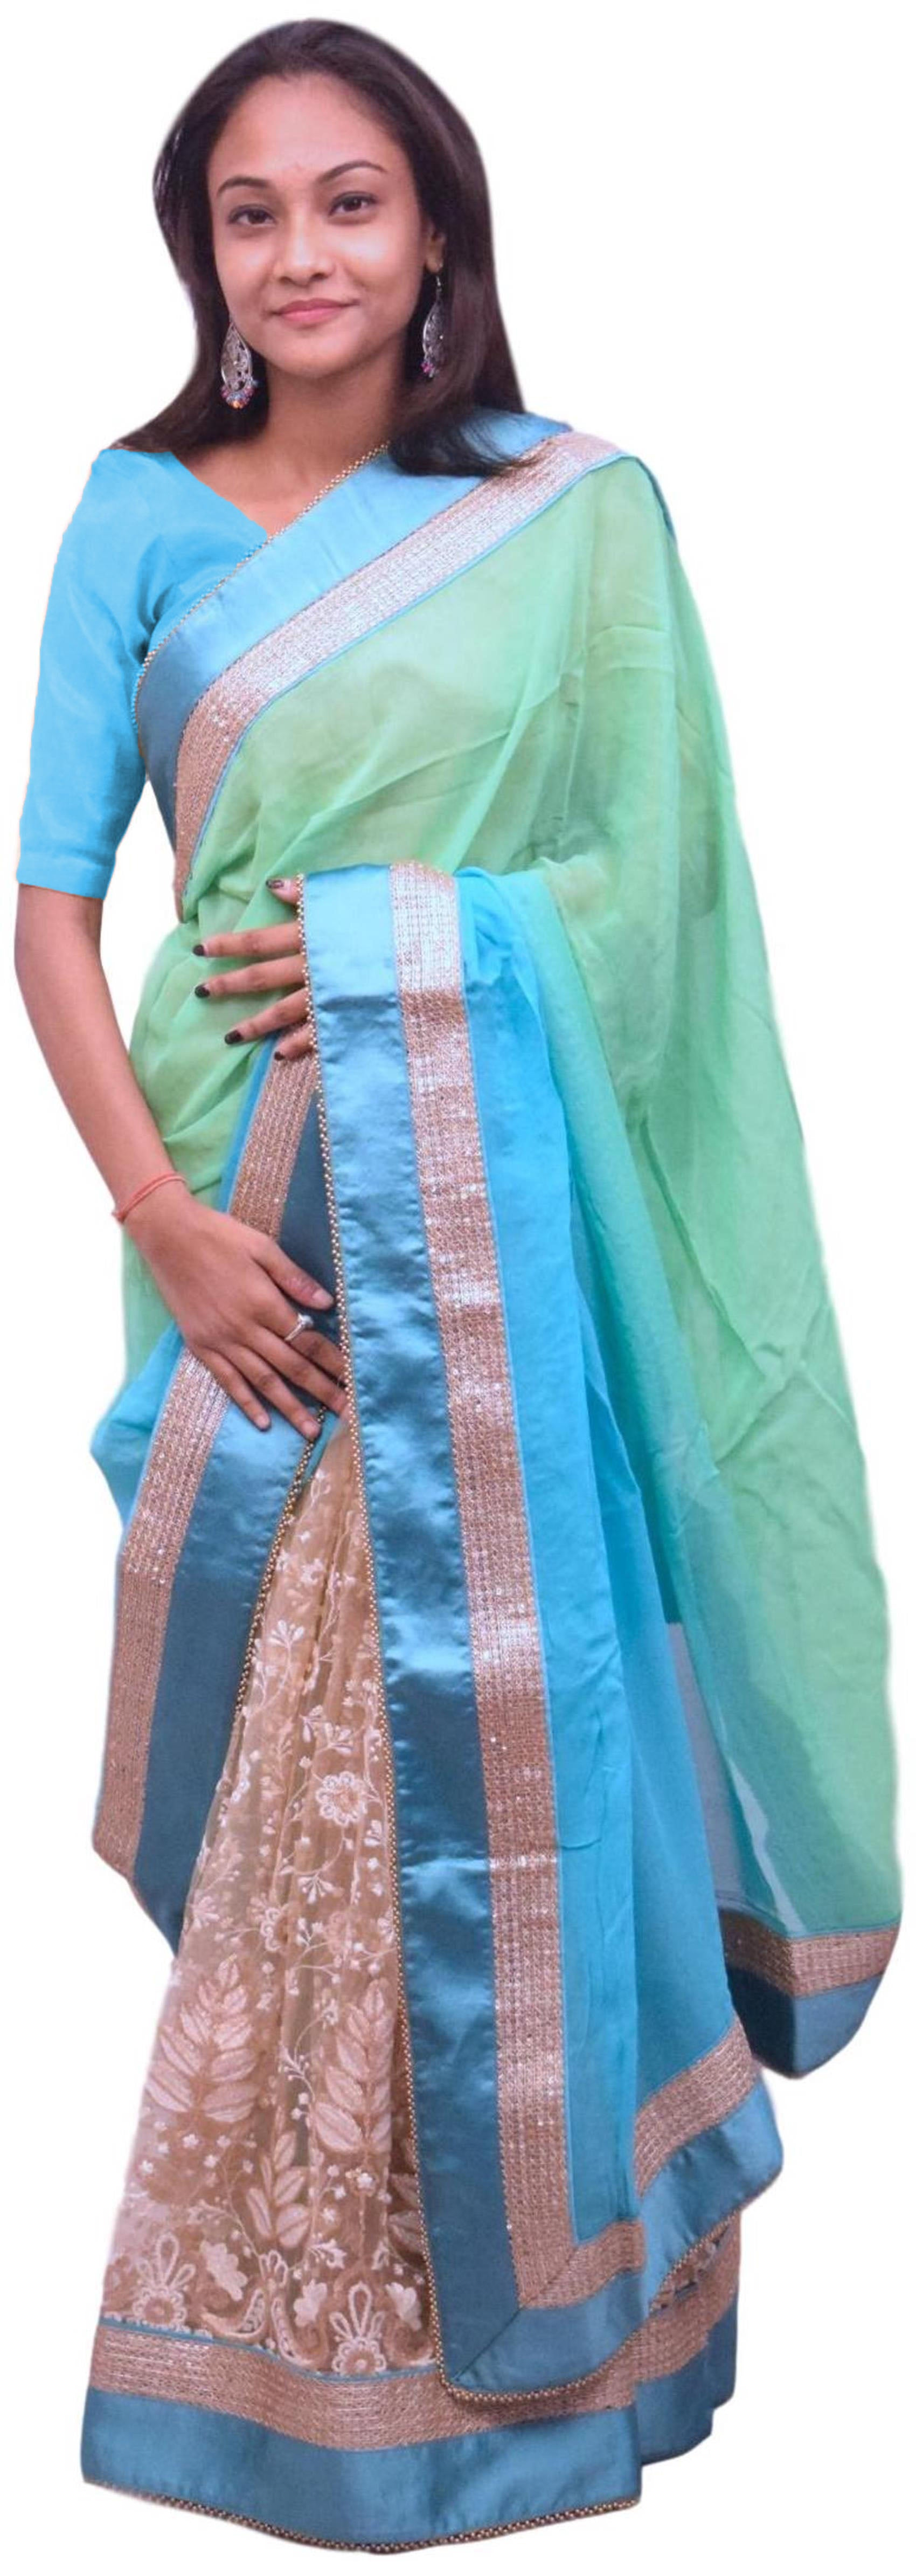 Turquoise & Cream Designer Georgette & Net Party Wear Hand Embroidery Zari Stone Sequence Dabka Thread Work Saree Sari